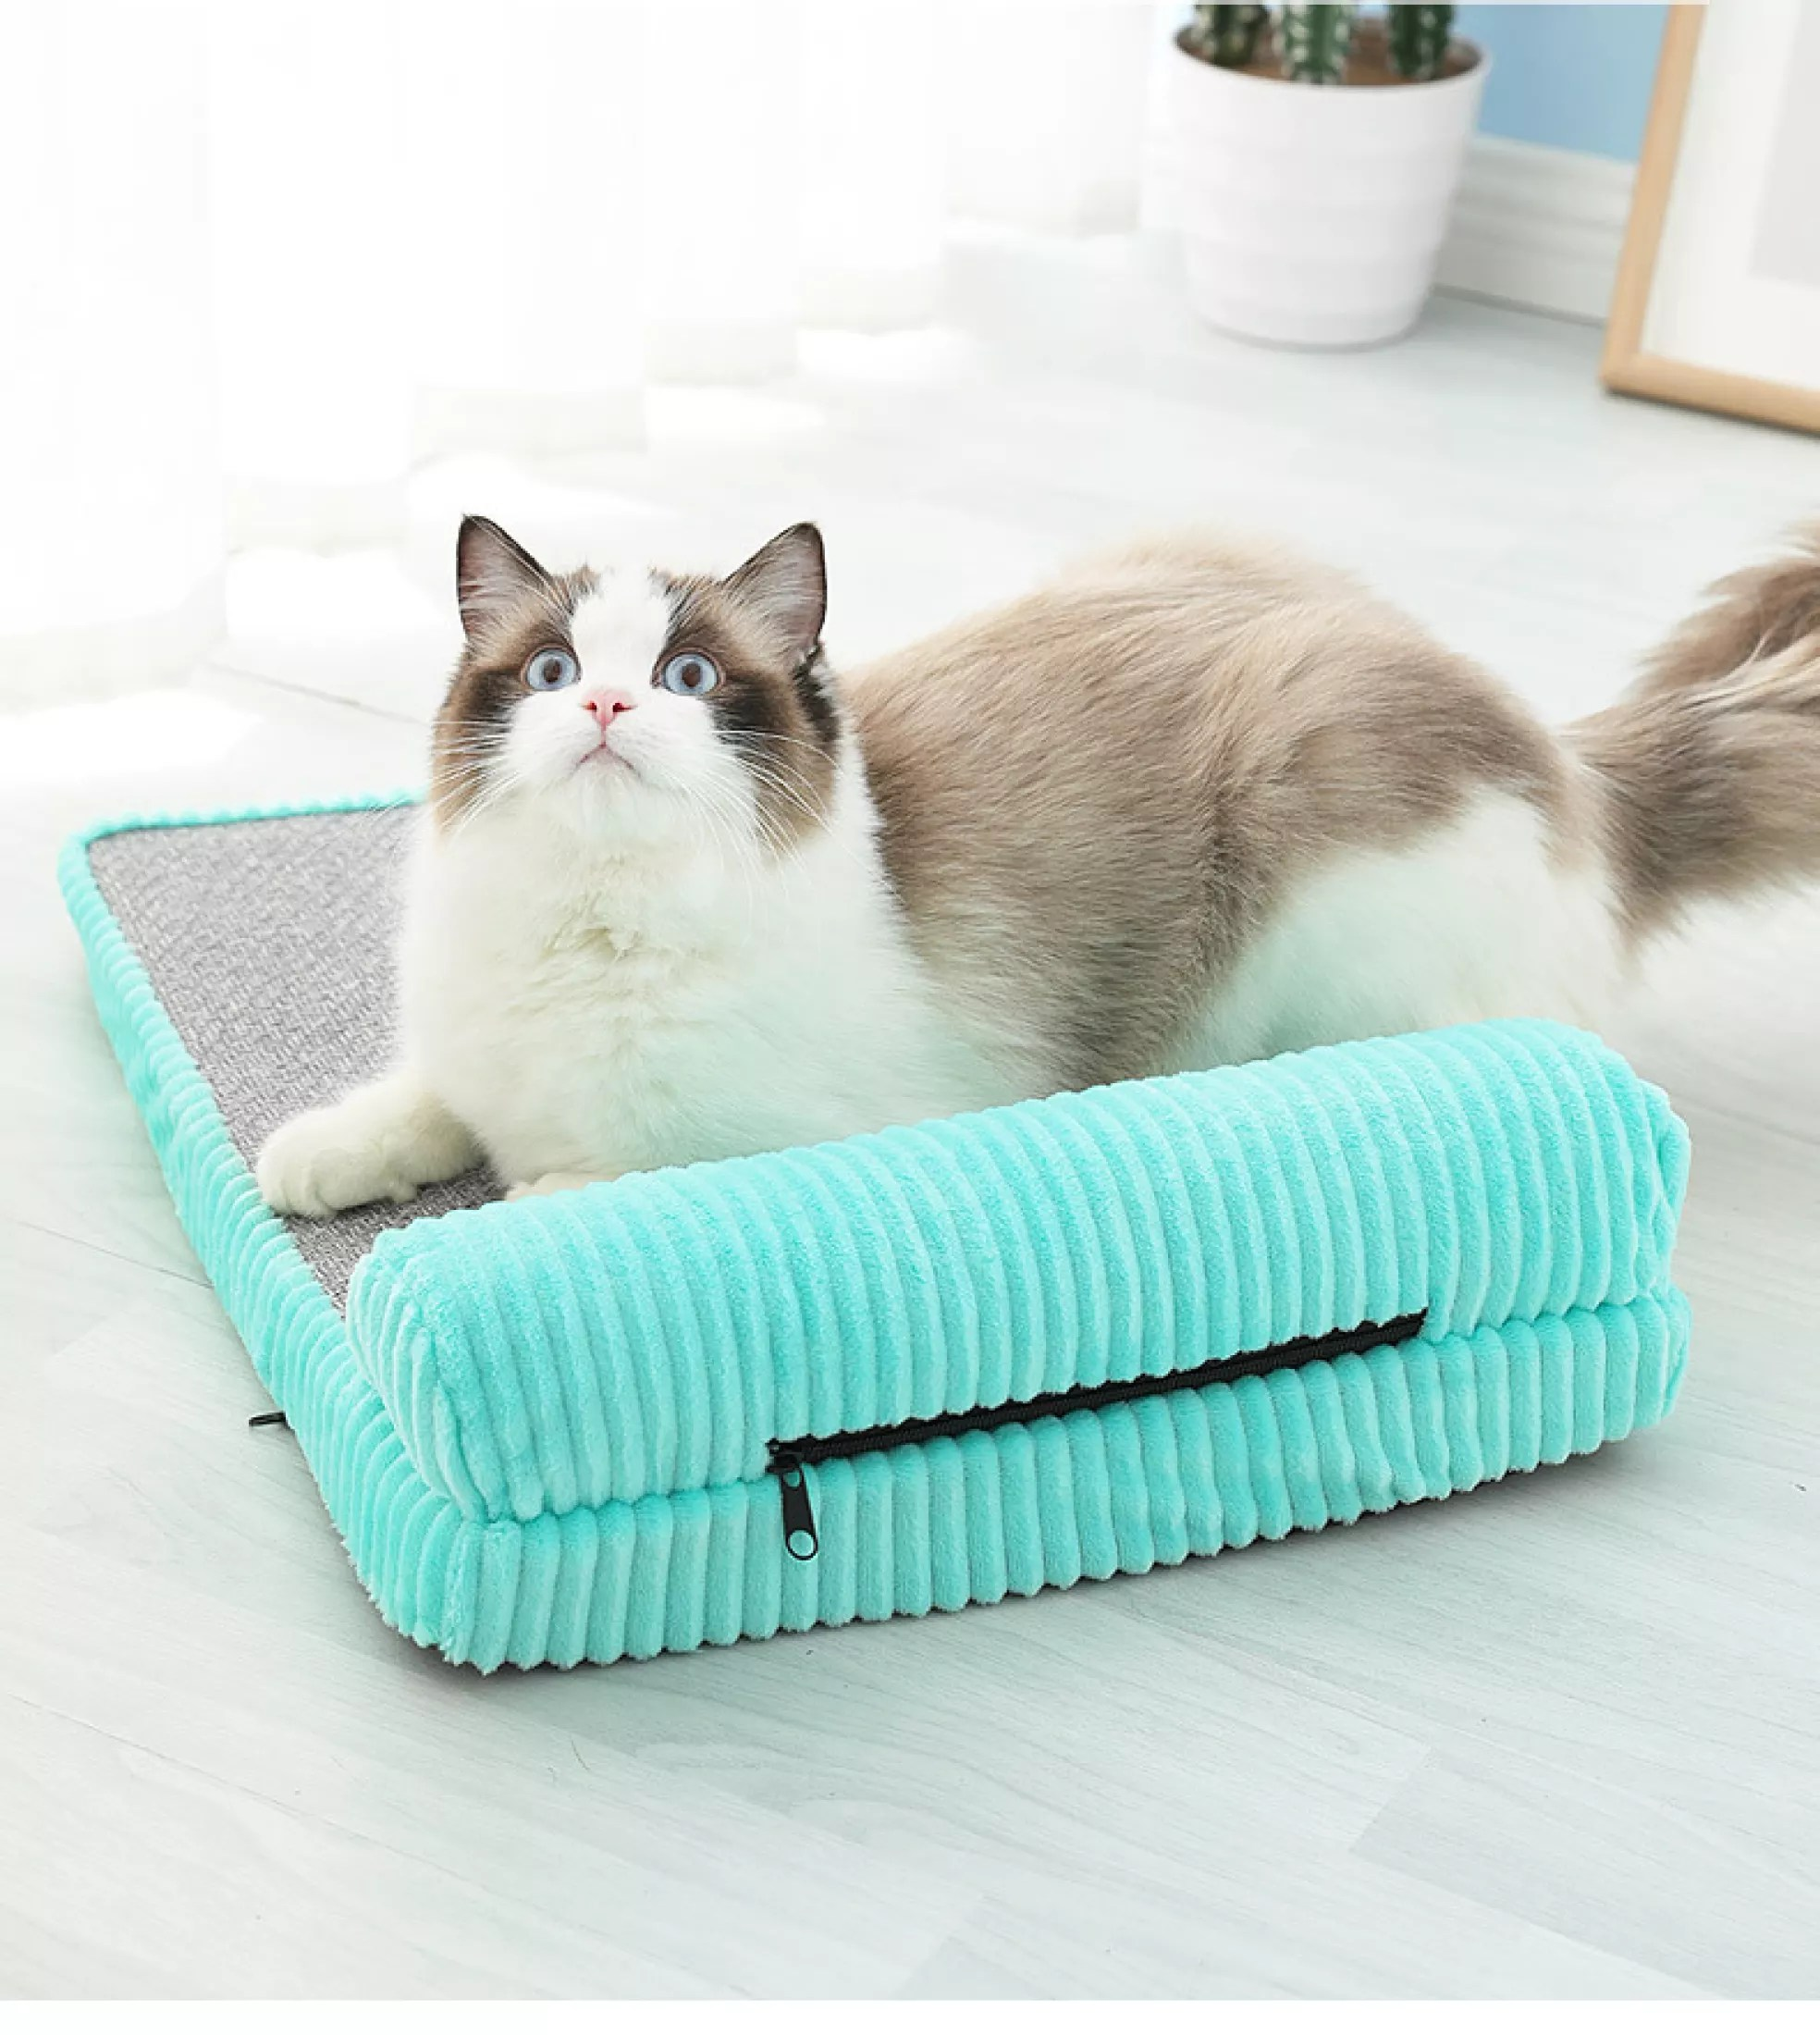 pet dog bed l shaped lounge cotton sofa with pillow pet bed for dogs cats warm universal soft cushion couch bed small medium large size cozy puppy mat